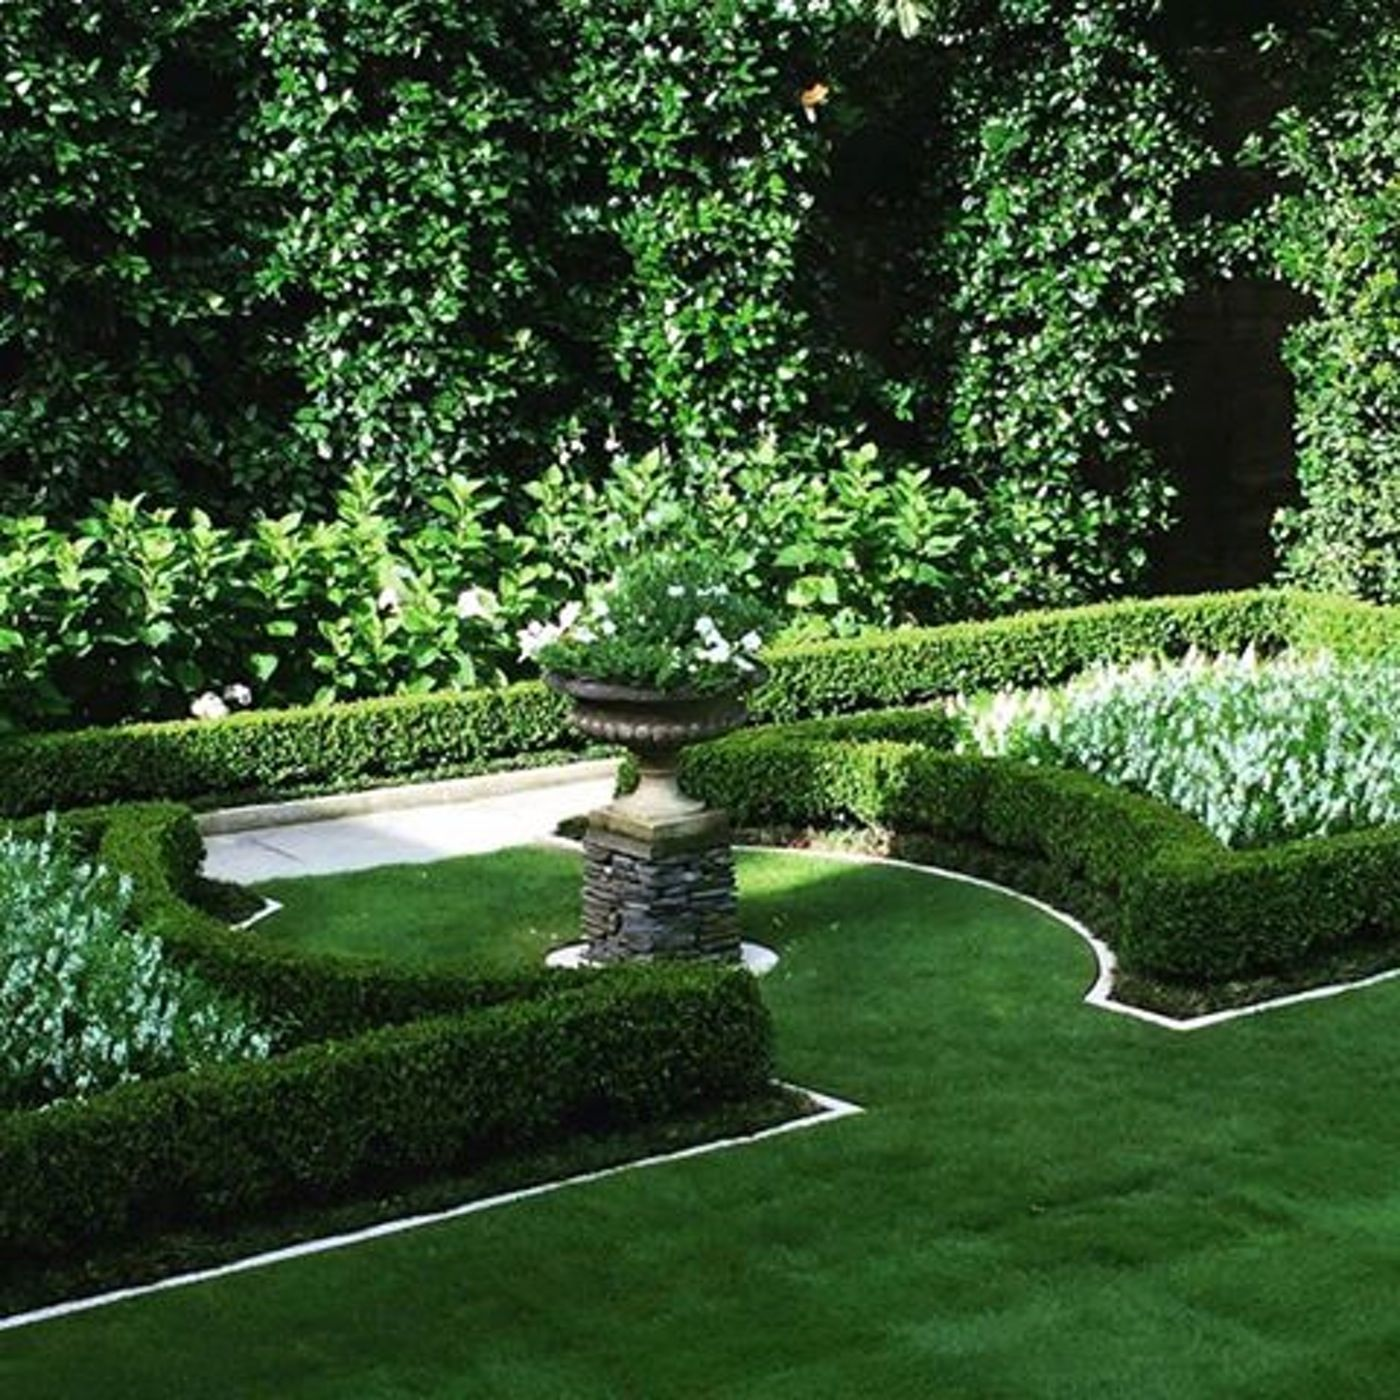 Landscape Garden Design: Parterres Enclose An Oval Of Grass And An Urn On A